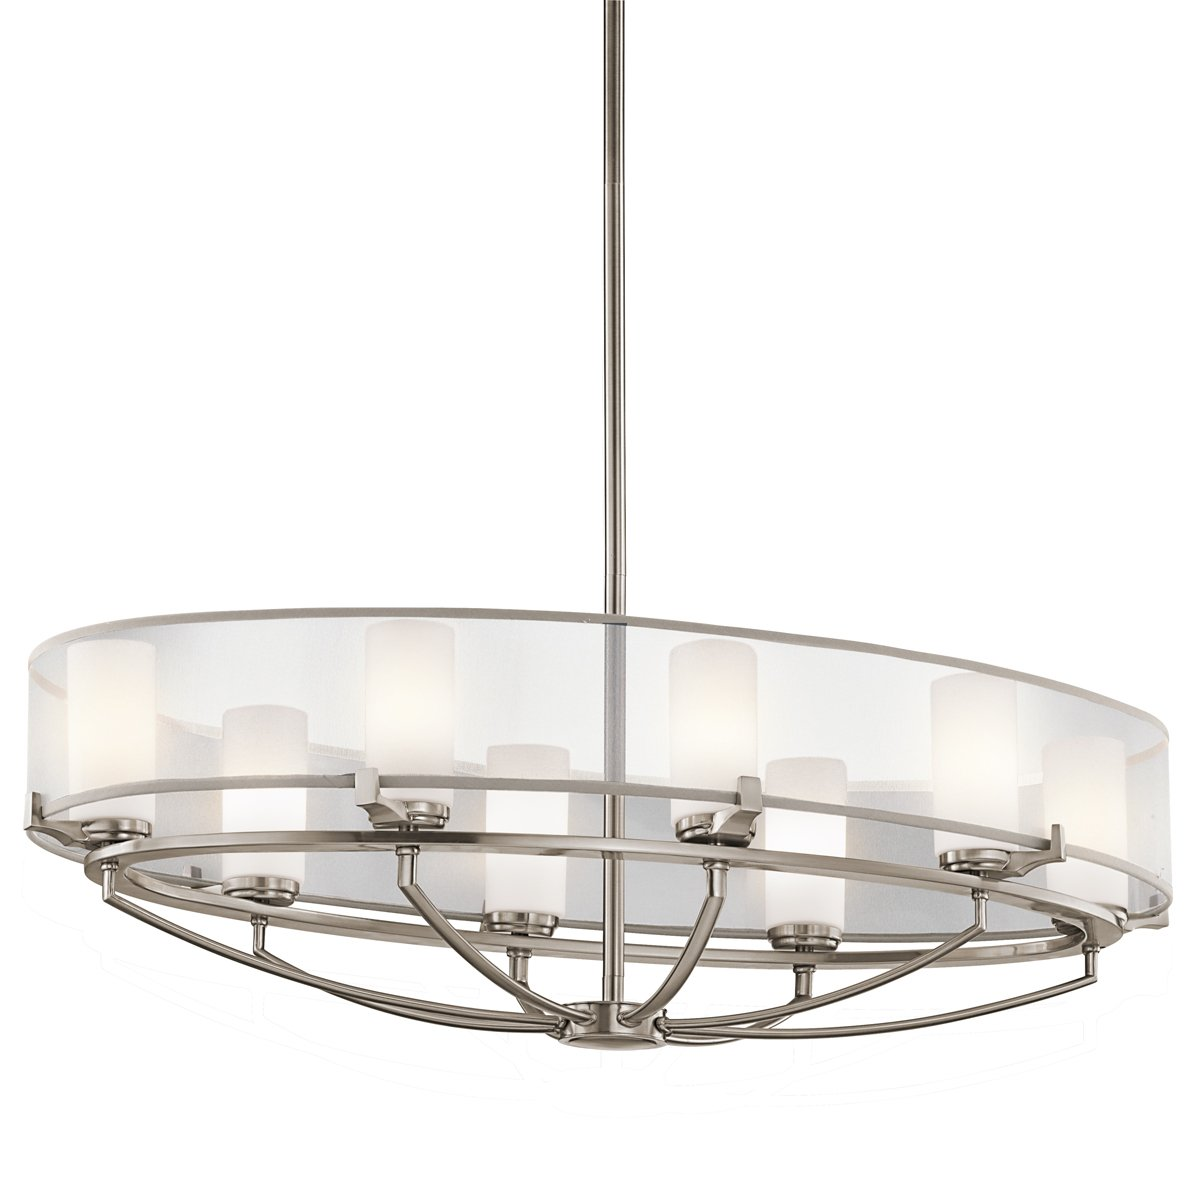 Kichler lighting 42922clp 8 light saldana oval pendant classic kichler lighting 42922clp 8 light saldana oval pendant classic pewter finish with etched opal glass diffuser and translucent organza fabric shade oval aloadofball Choice Image